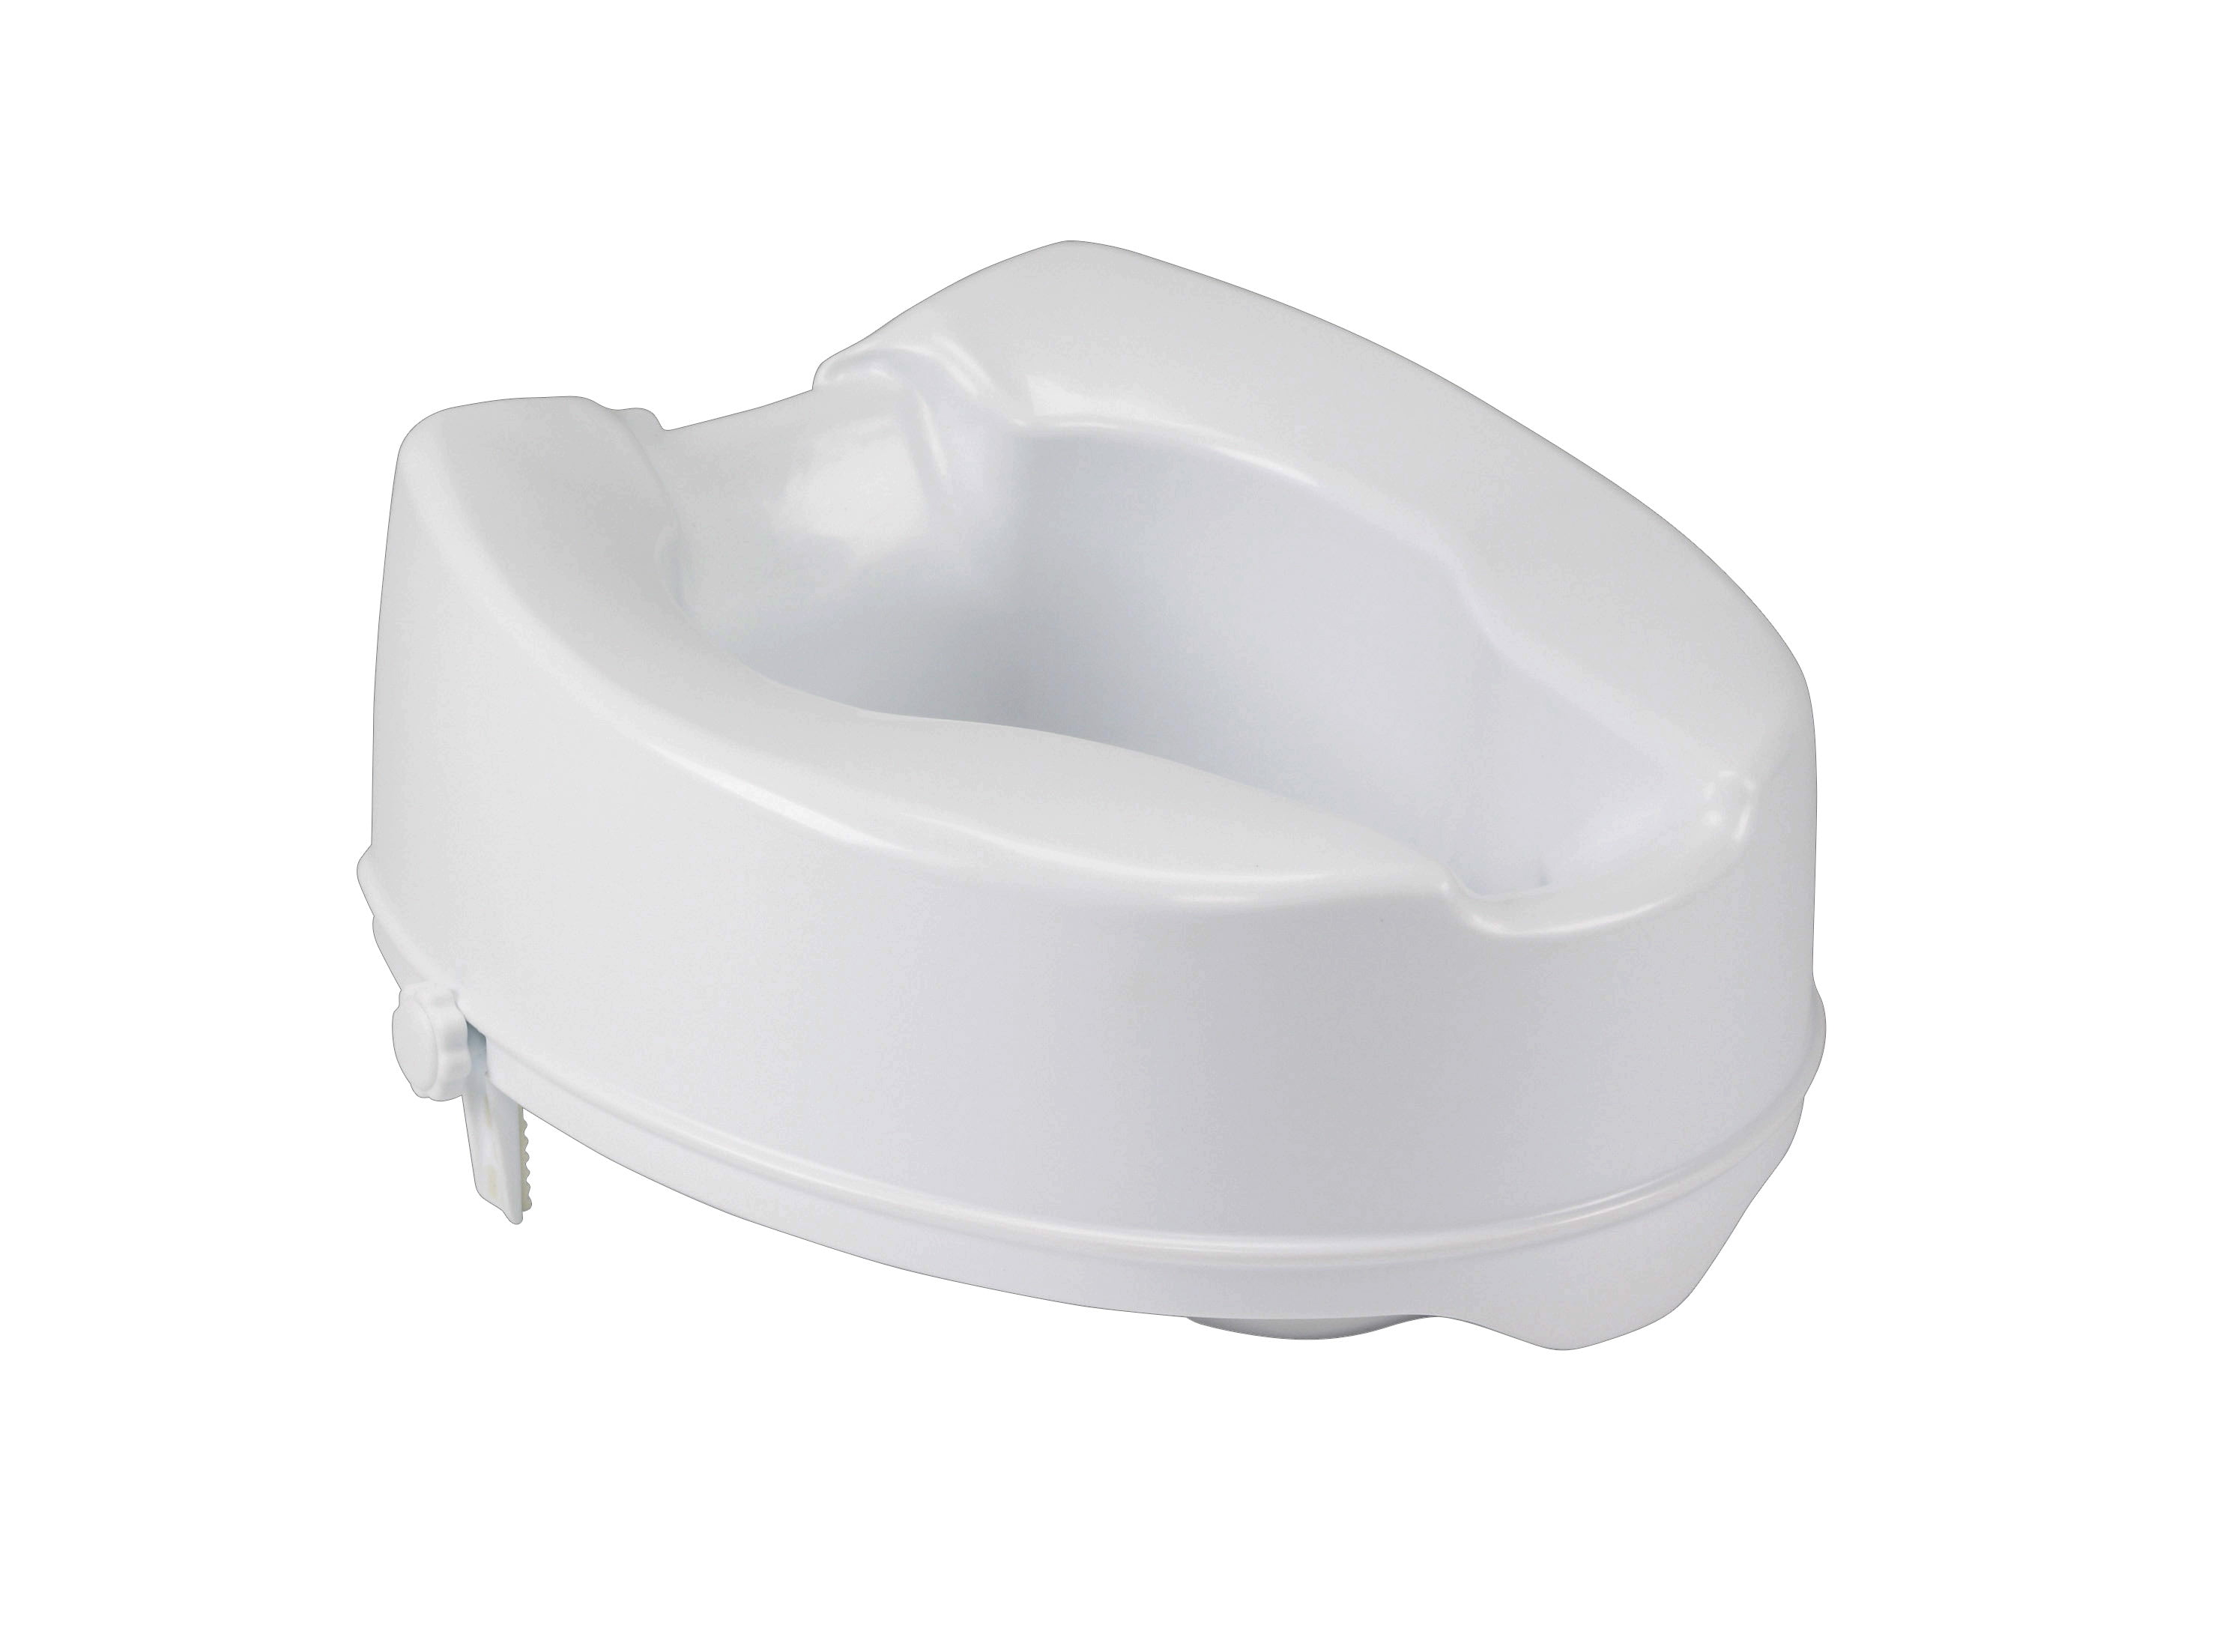 Cool Drive Medical Raised Toilet Seat With Lock Standard Seat White Short Links Chair Design For Home Short Linksinfo